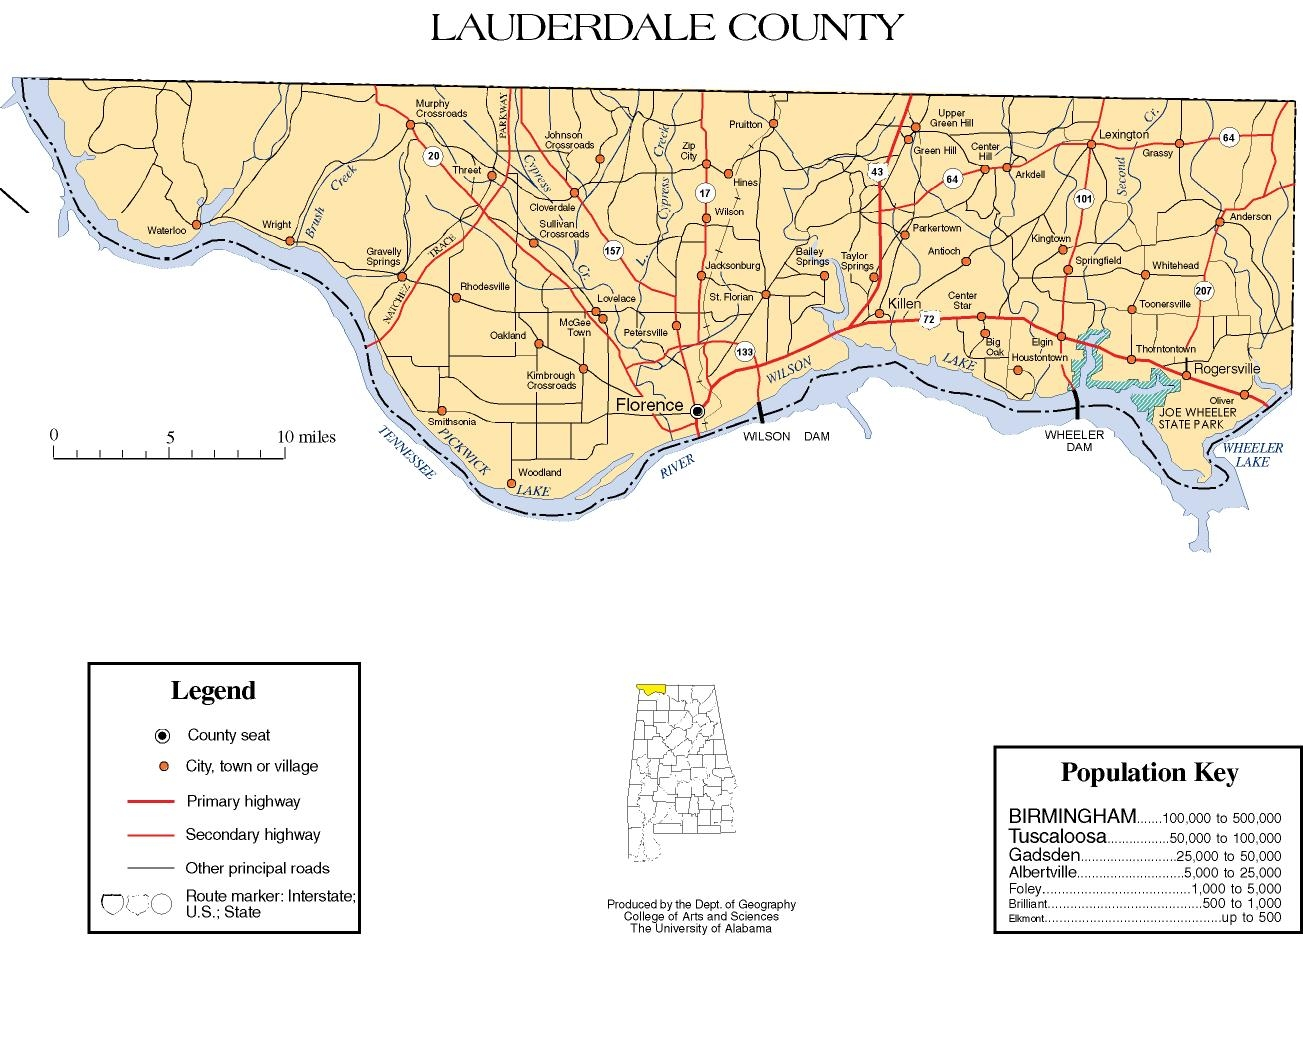 A map of Lauderdale County, Alabama.